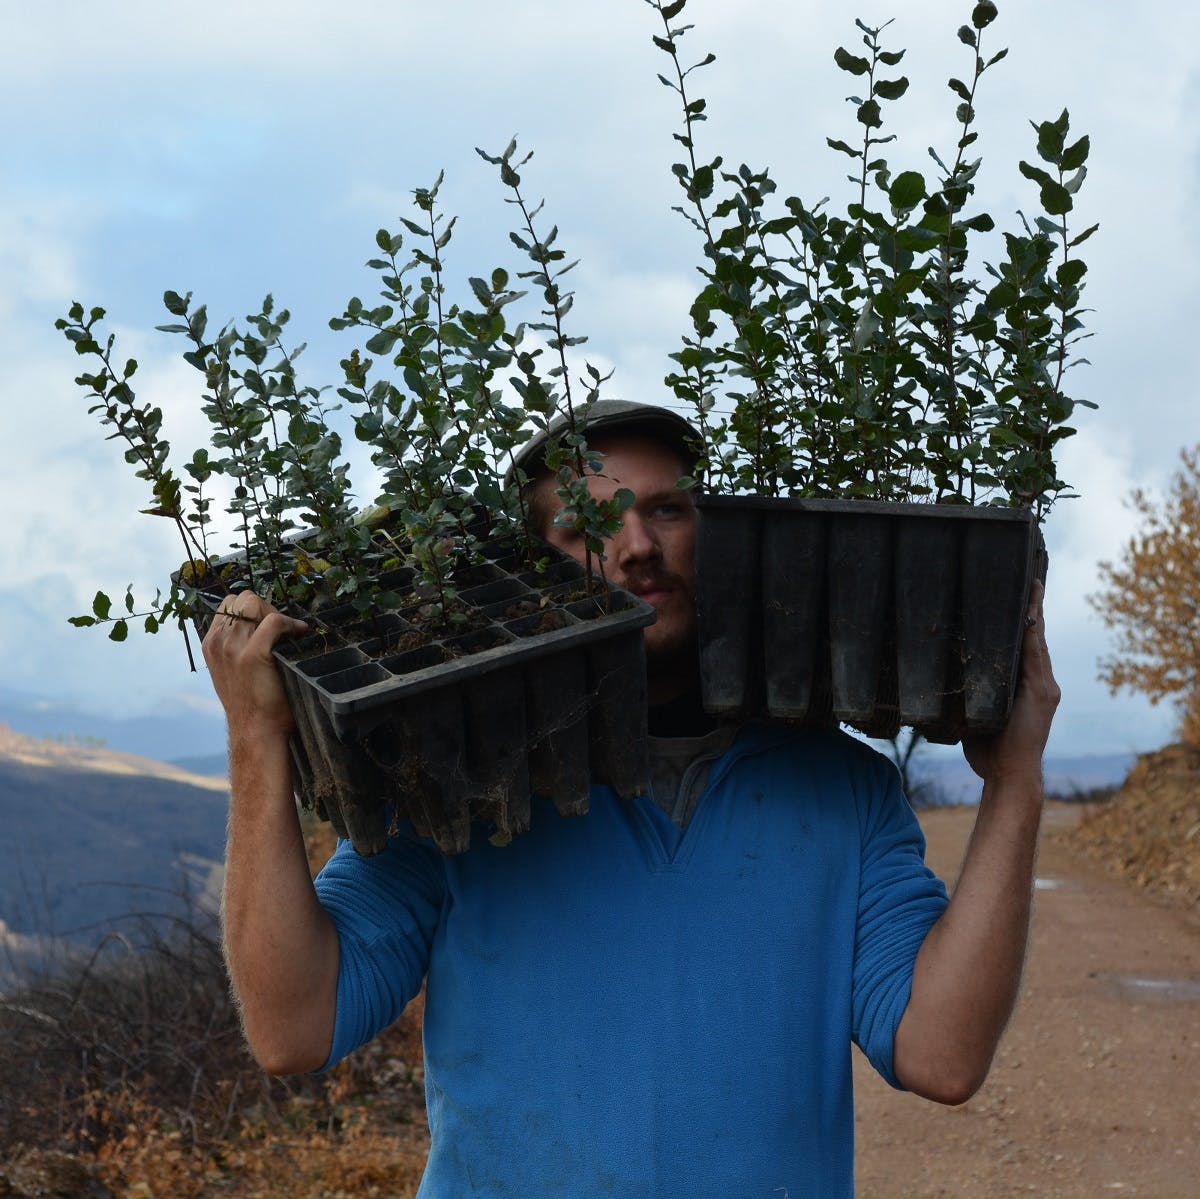 A tree planter carrying native saplings to be planted in Portugal to help fight deforestation on the Iberian peninsula.